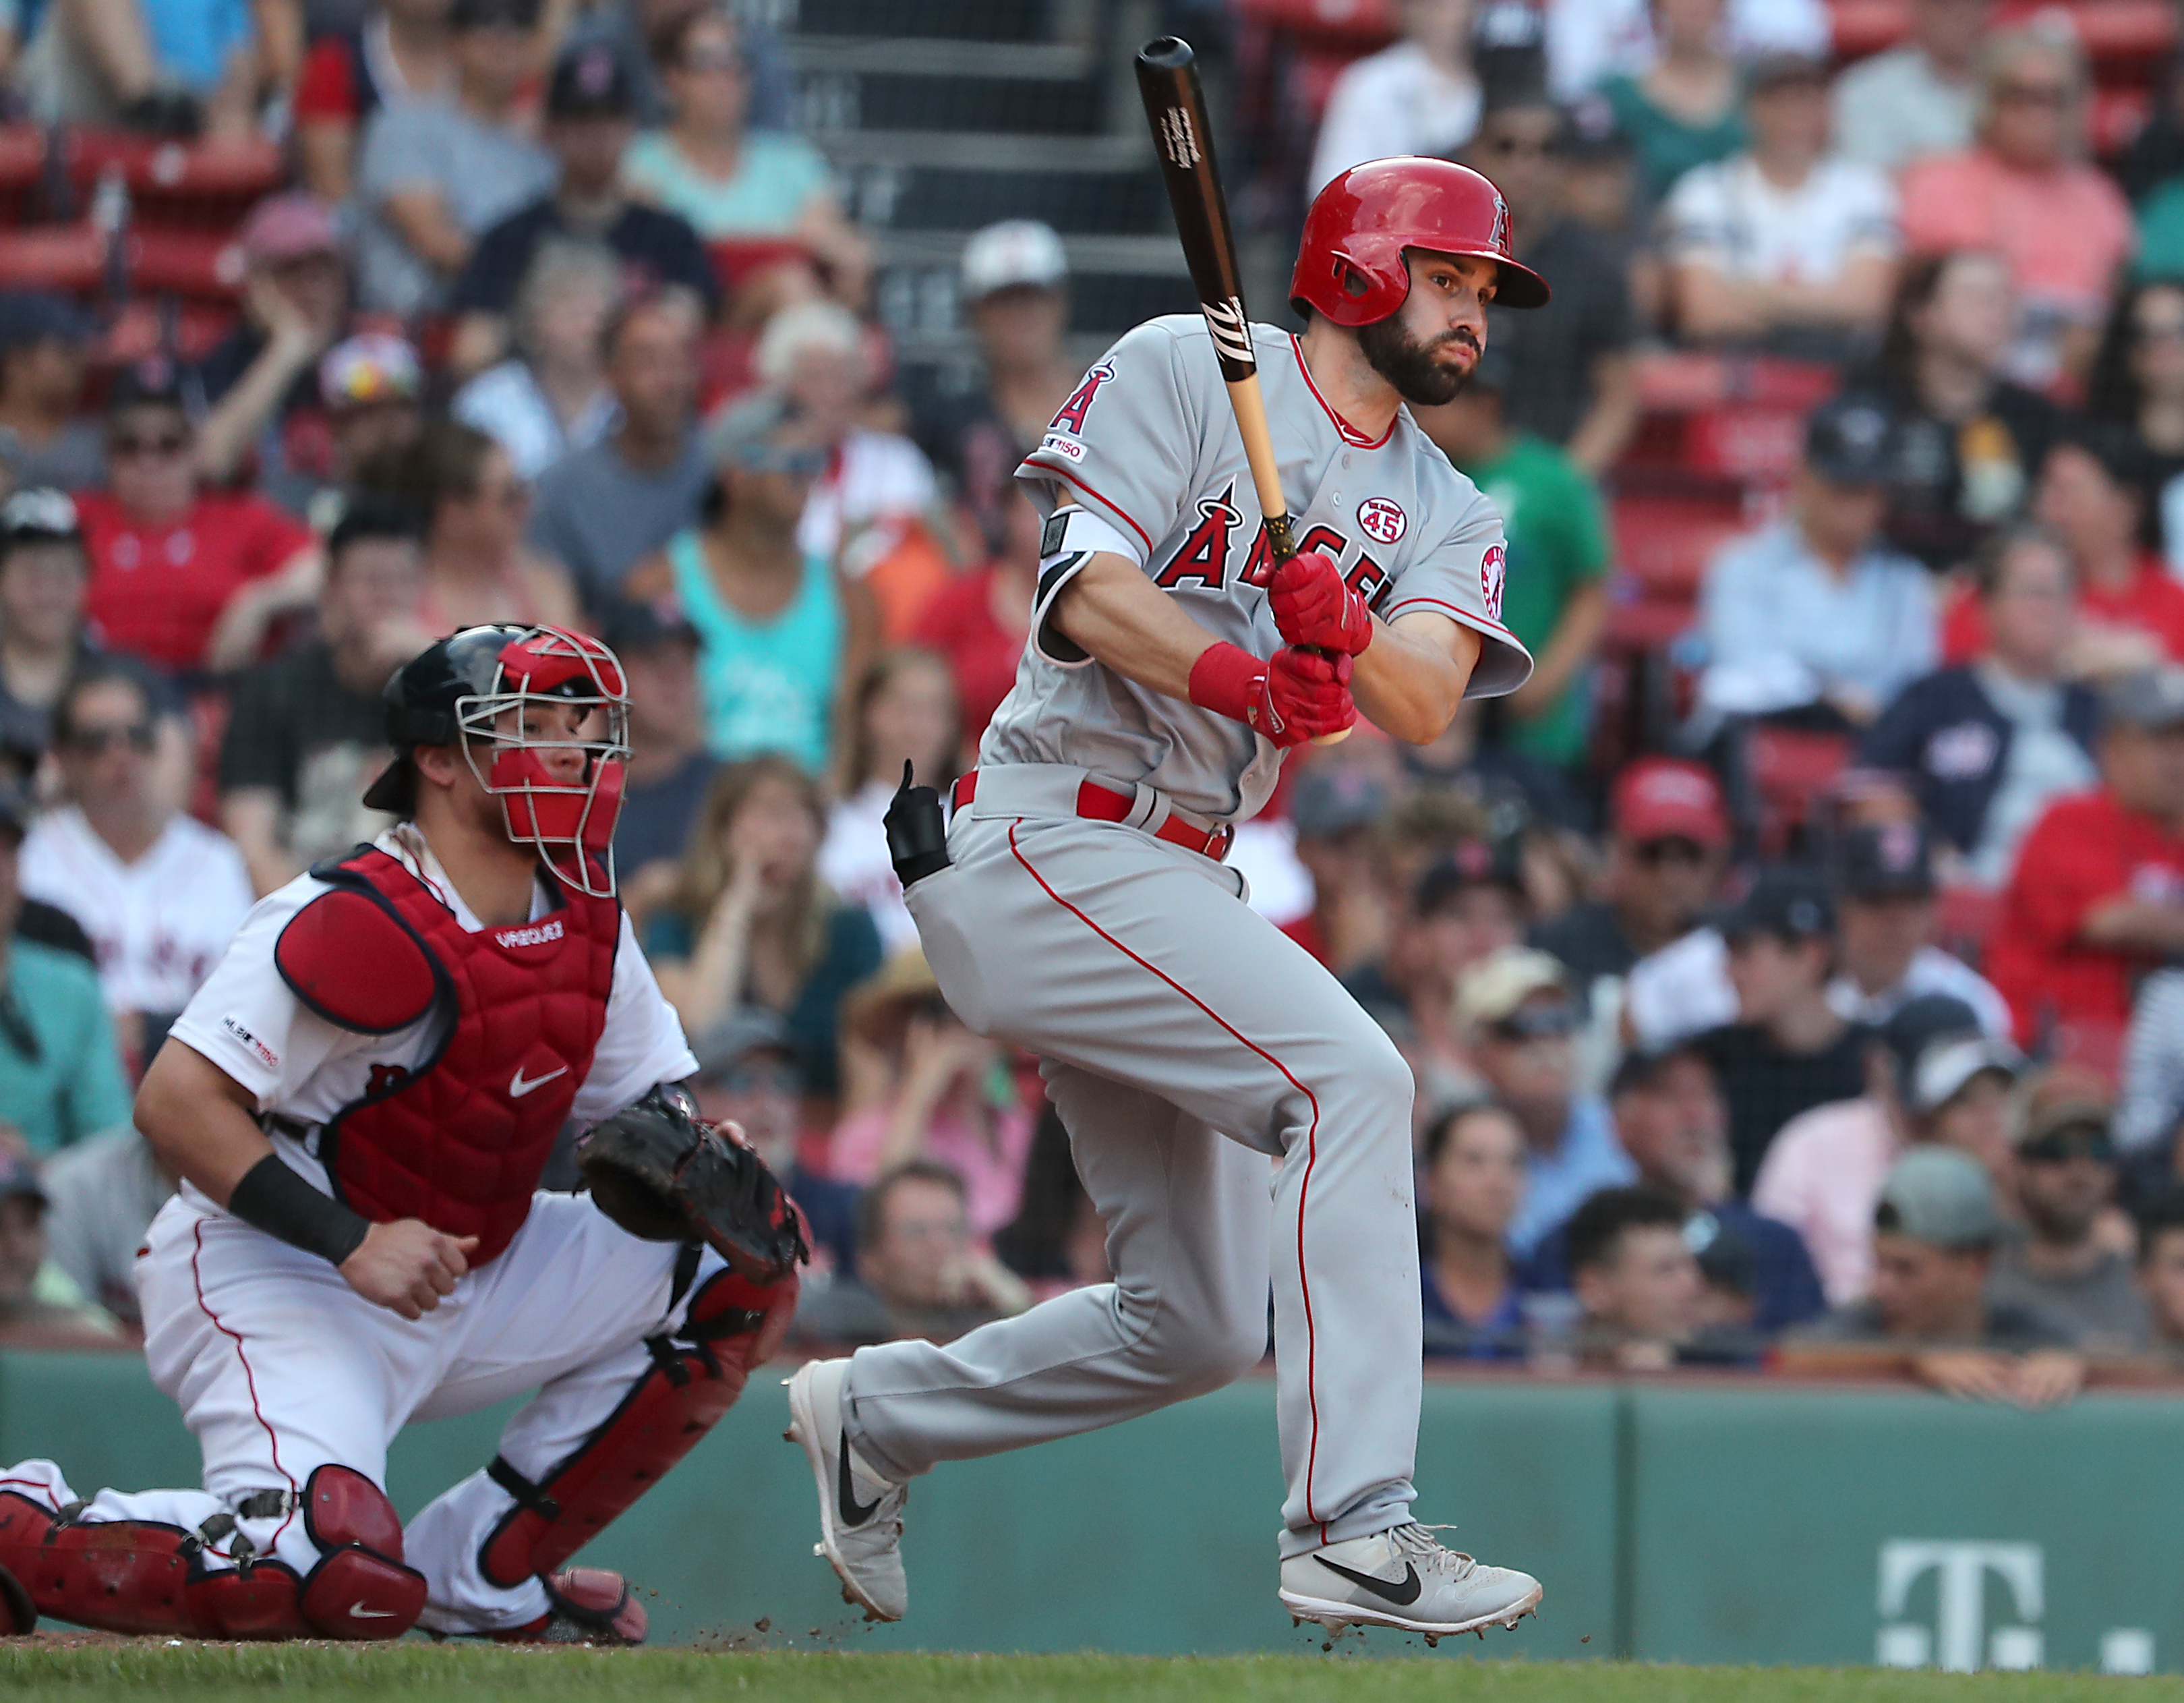 Angels' extra effort enough to beat Red Sox in 10